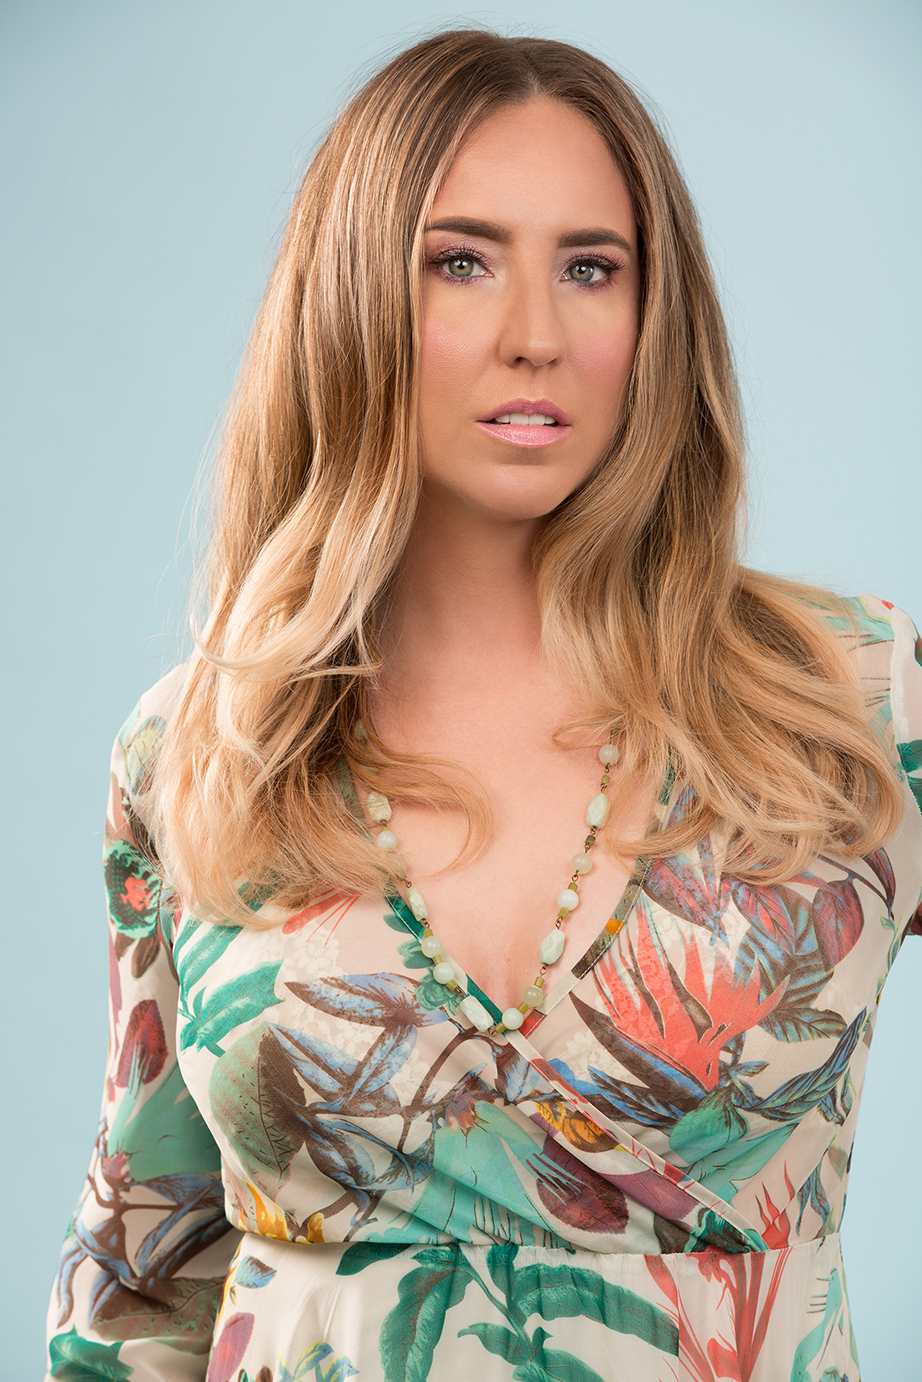 retouched blonde woman in tropical floral wrap dress